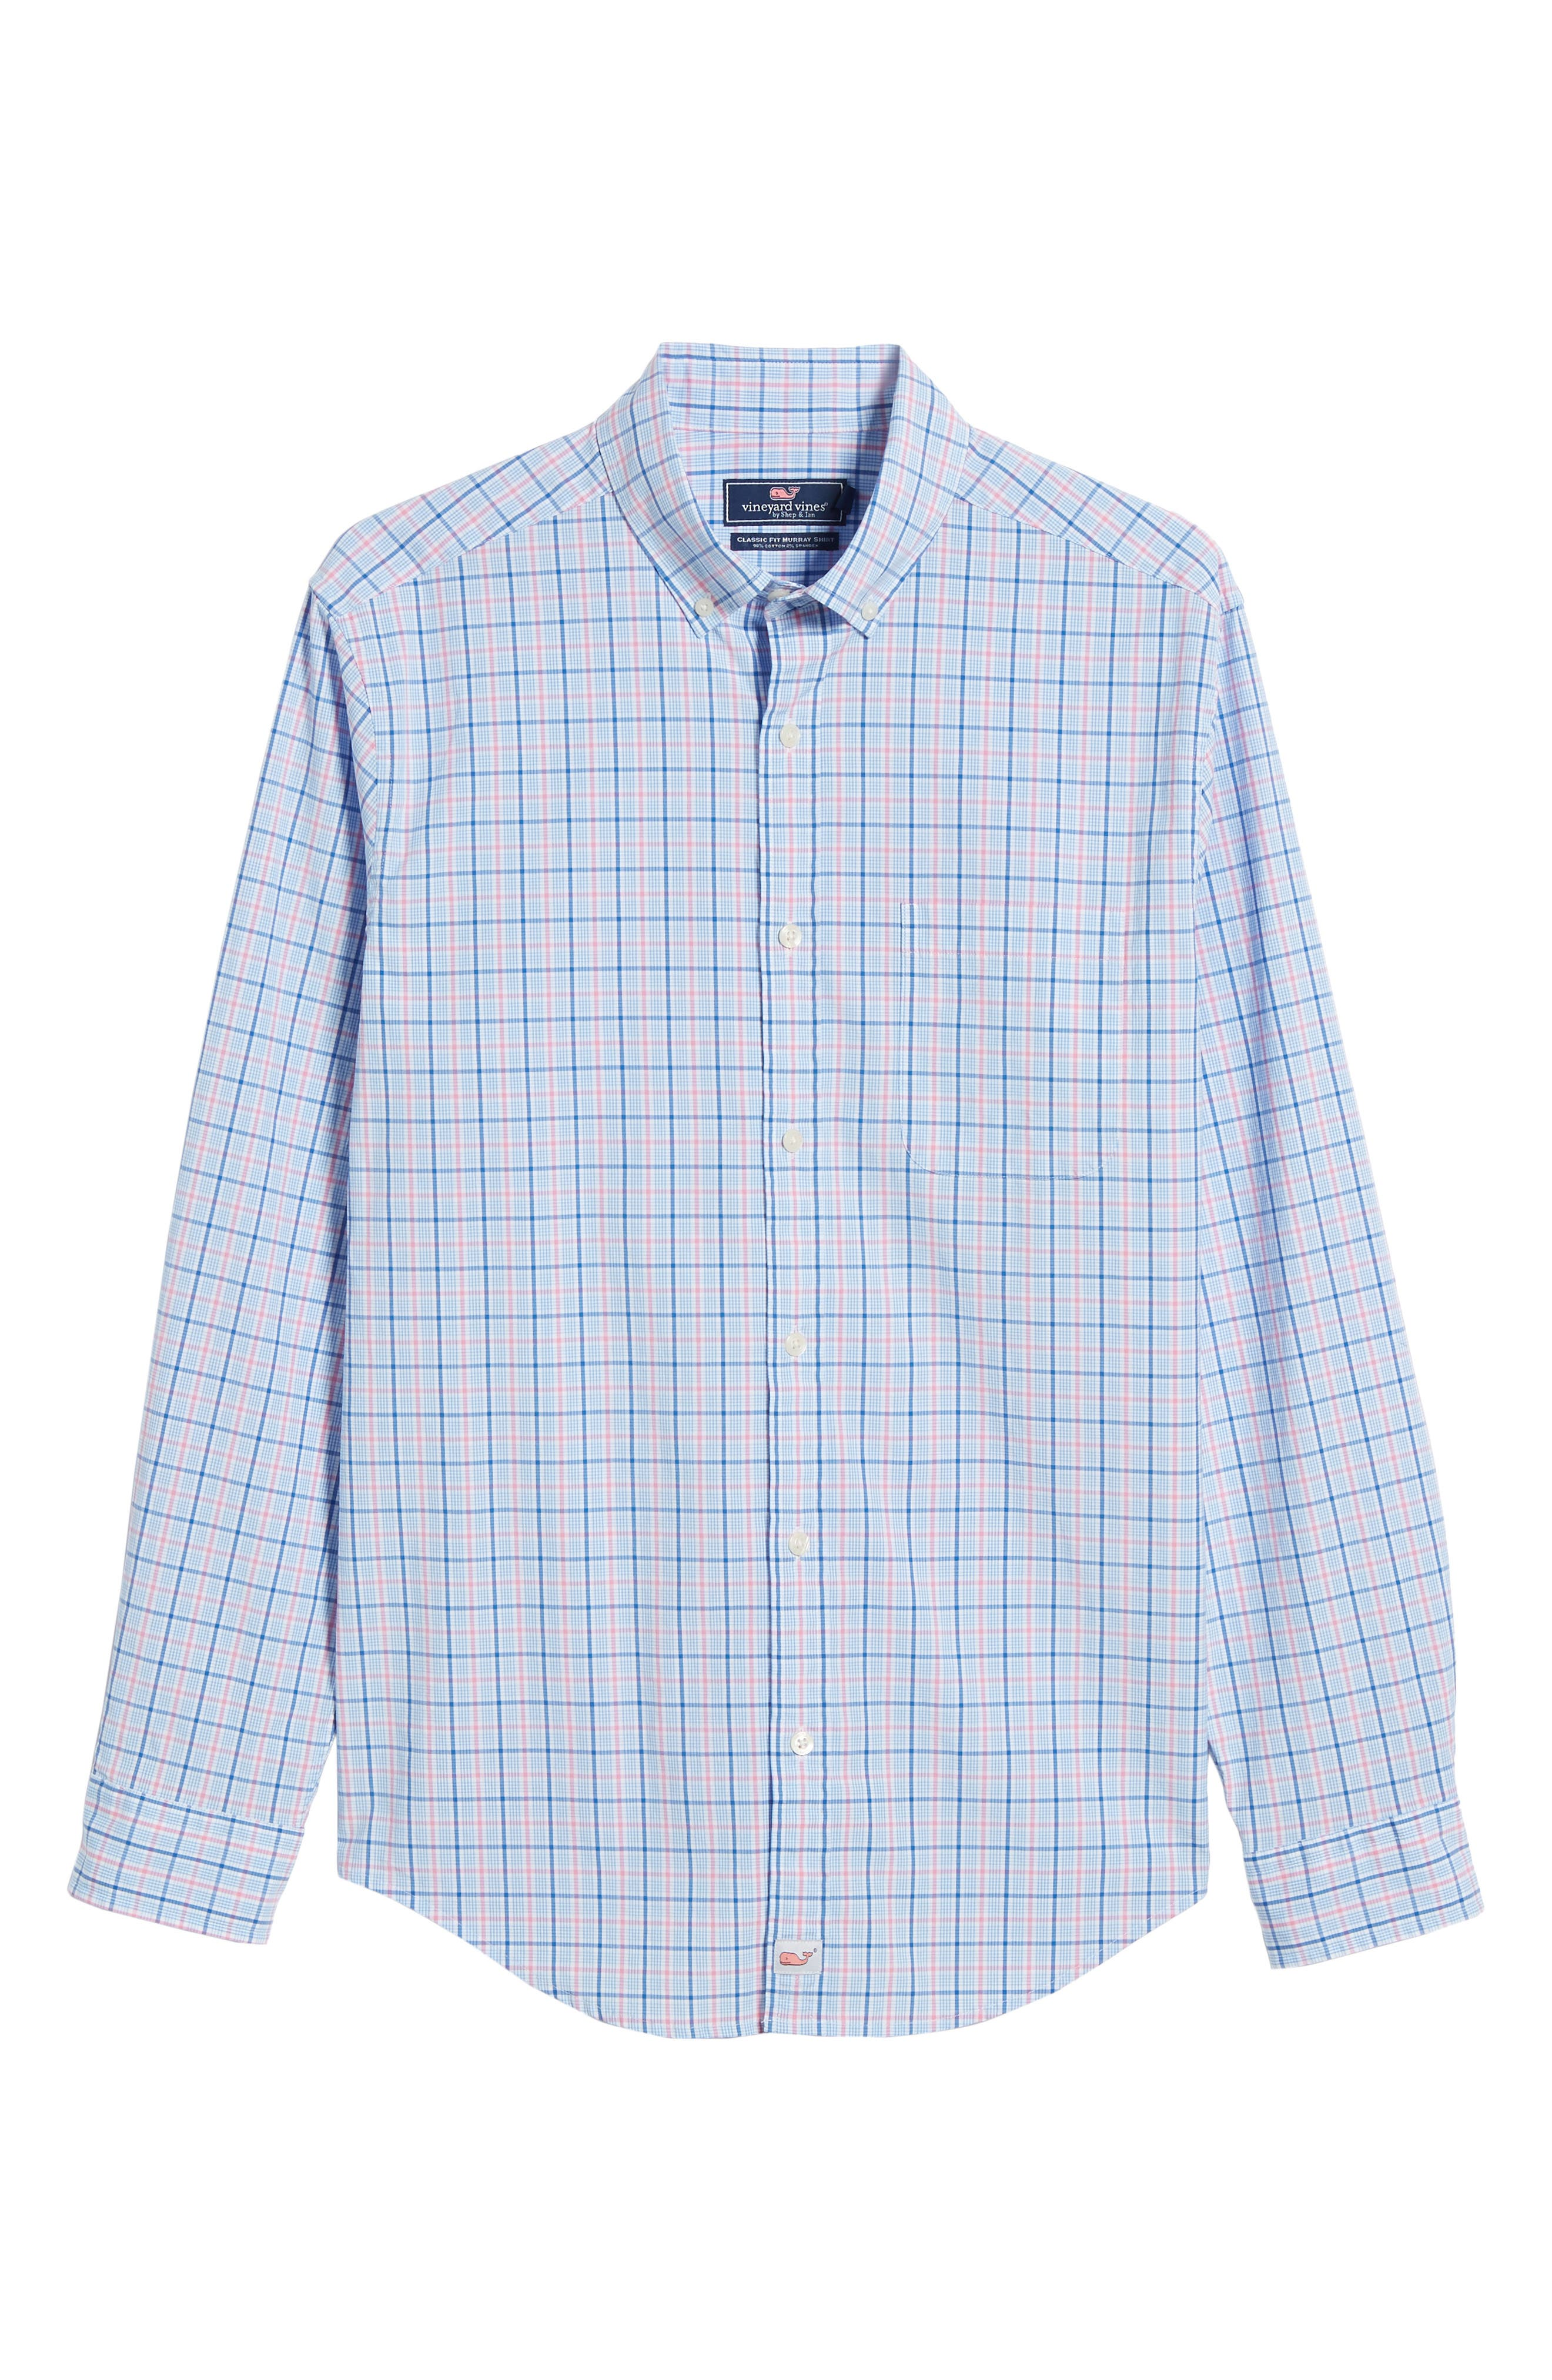 Sir Christie Classic Fit Check Sport Shirt,                             Alternate thumbnail 6, color,                             427